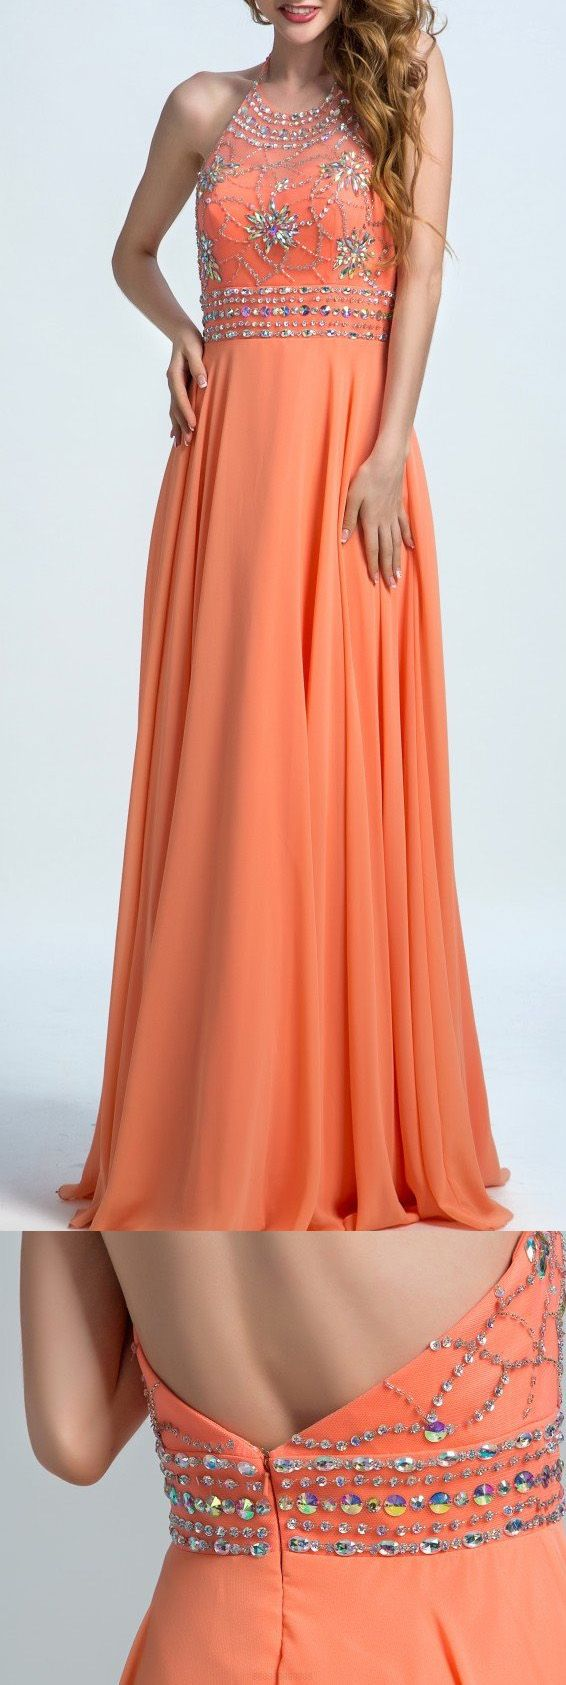 Long Prom Dresses, Sexy Prom dresses, Coral Prom Dresses, Prom Dresses Long, Prom Long Dresses, Long Evening Dresses, Sexy Long Dresses, Sexy Evening Dresses, Sleeveless Prom Dresses, Rhinestone Evening Dresses, Floor-length Evening Dresses